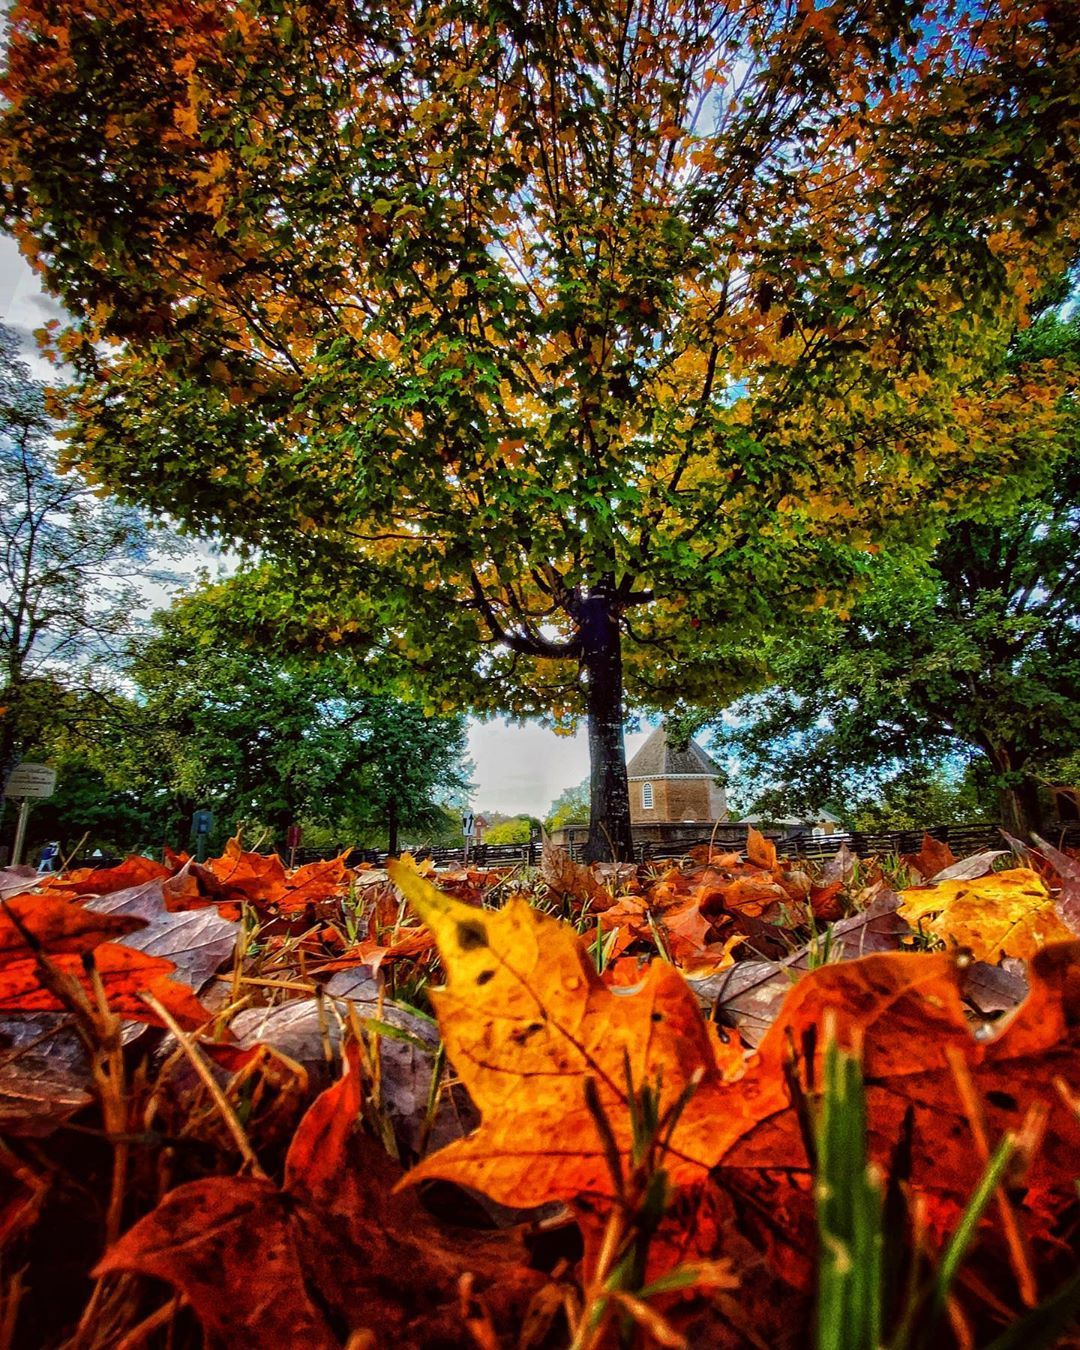 The soundtrack of fall is playing on repeat in Williamsburg at the moment. Lots of leaves 🍁 swirling in unison on the ground as geese honk in the sky above as they migrate south. 🍂🎃🍂 - - - - - - - - - - - - -